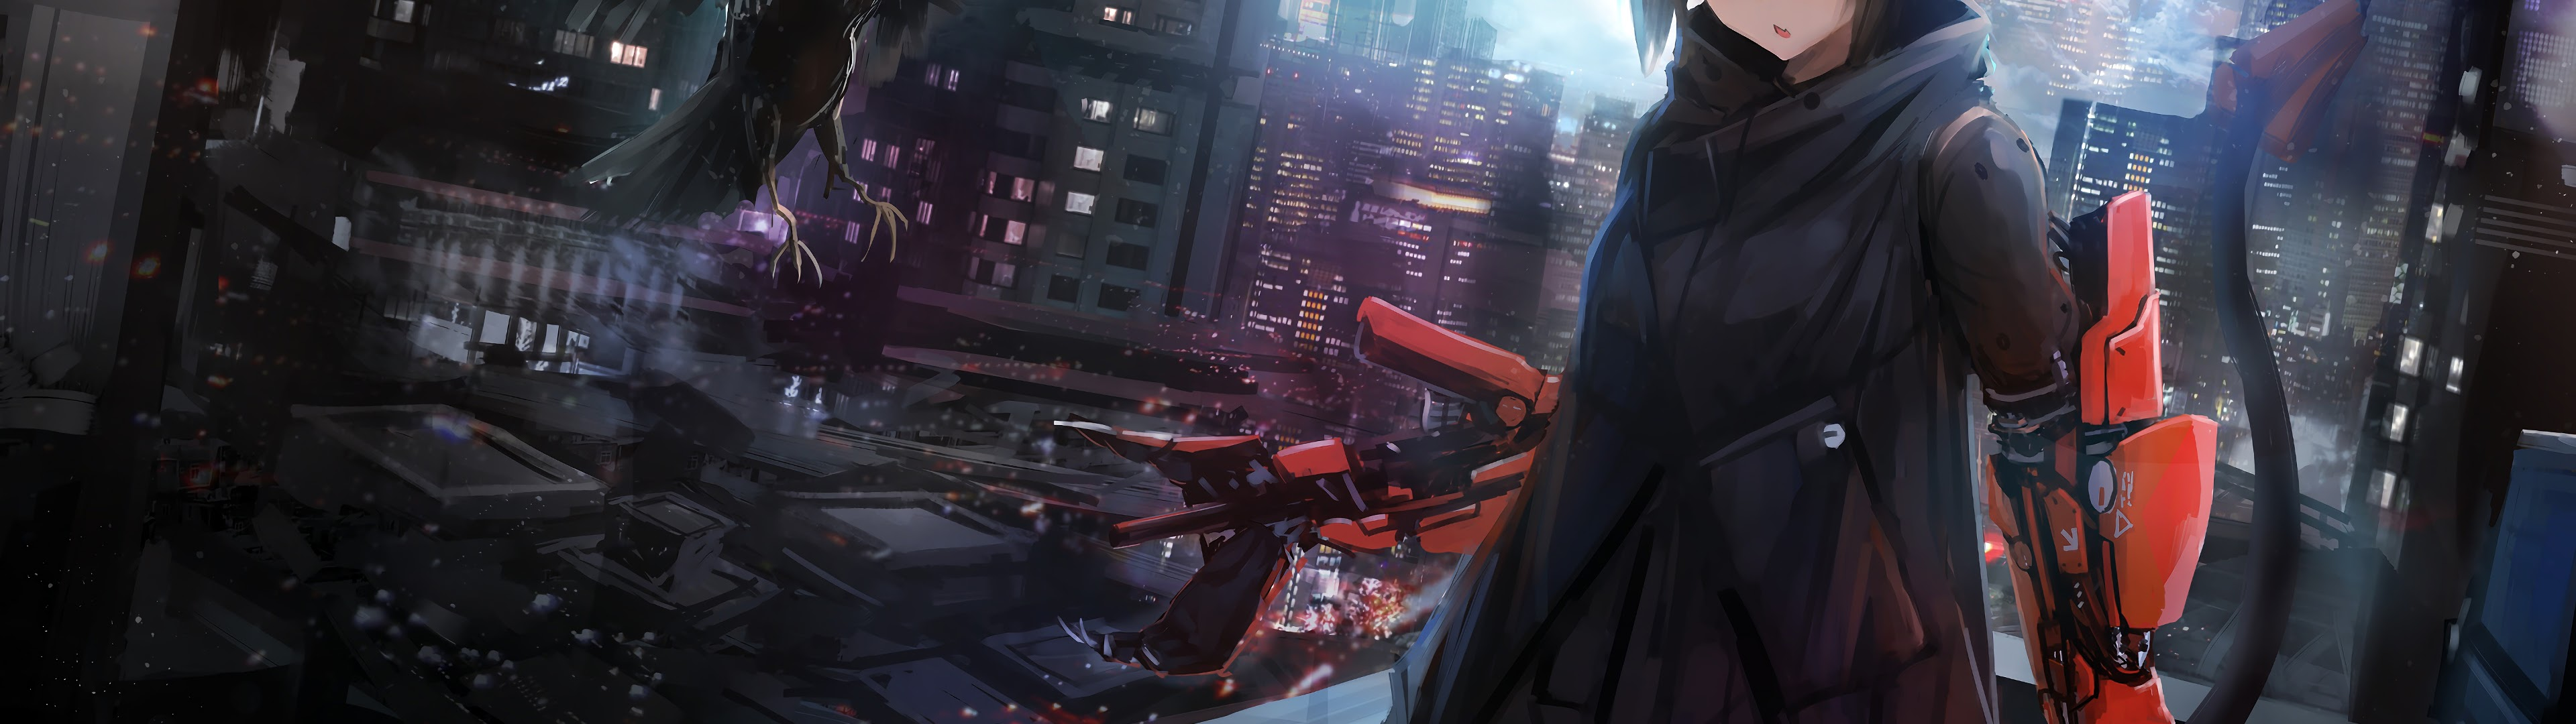 Anime Girl Crow Cyberpunk Sci Fi 4k Cyberpunk Anime Girl 3840x1080 Wallpaper Teahub Io